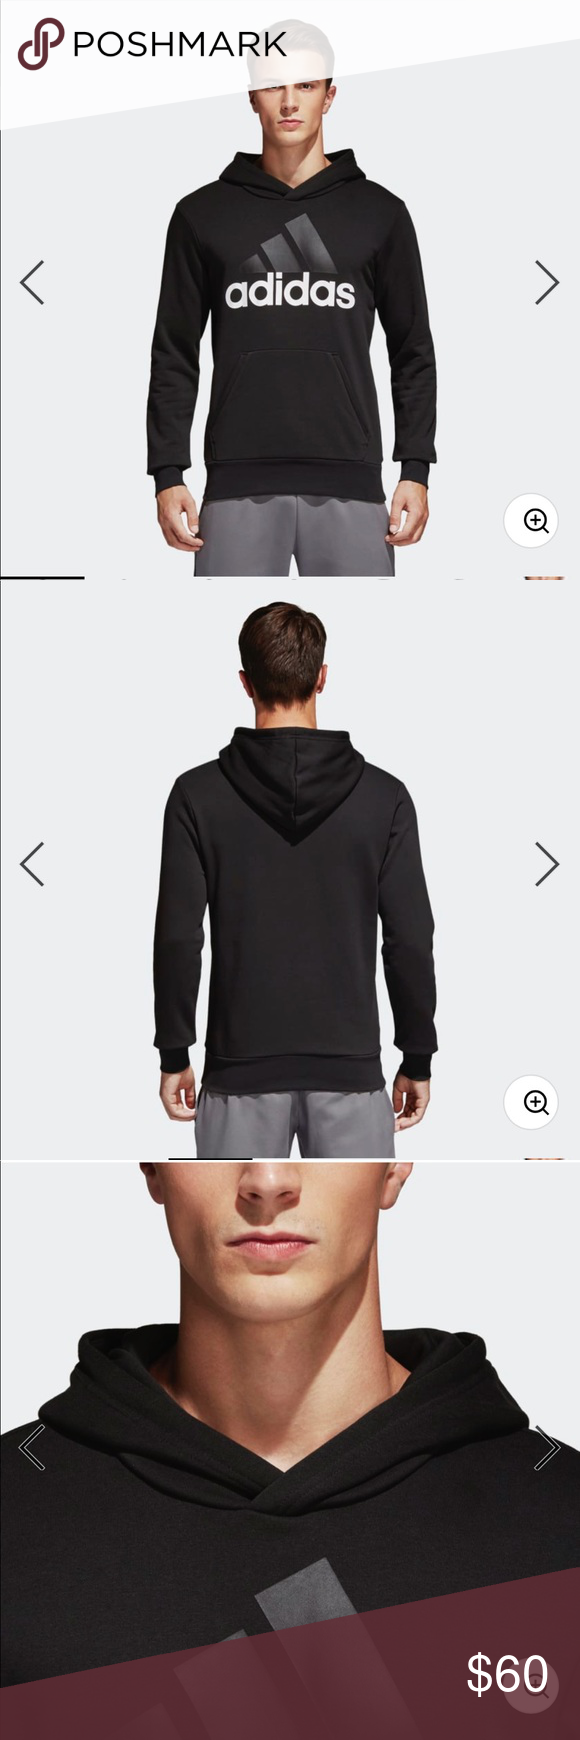 Adidas Essentials lineal Pullover Hoodie NWT Pinterest